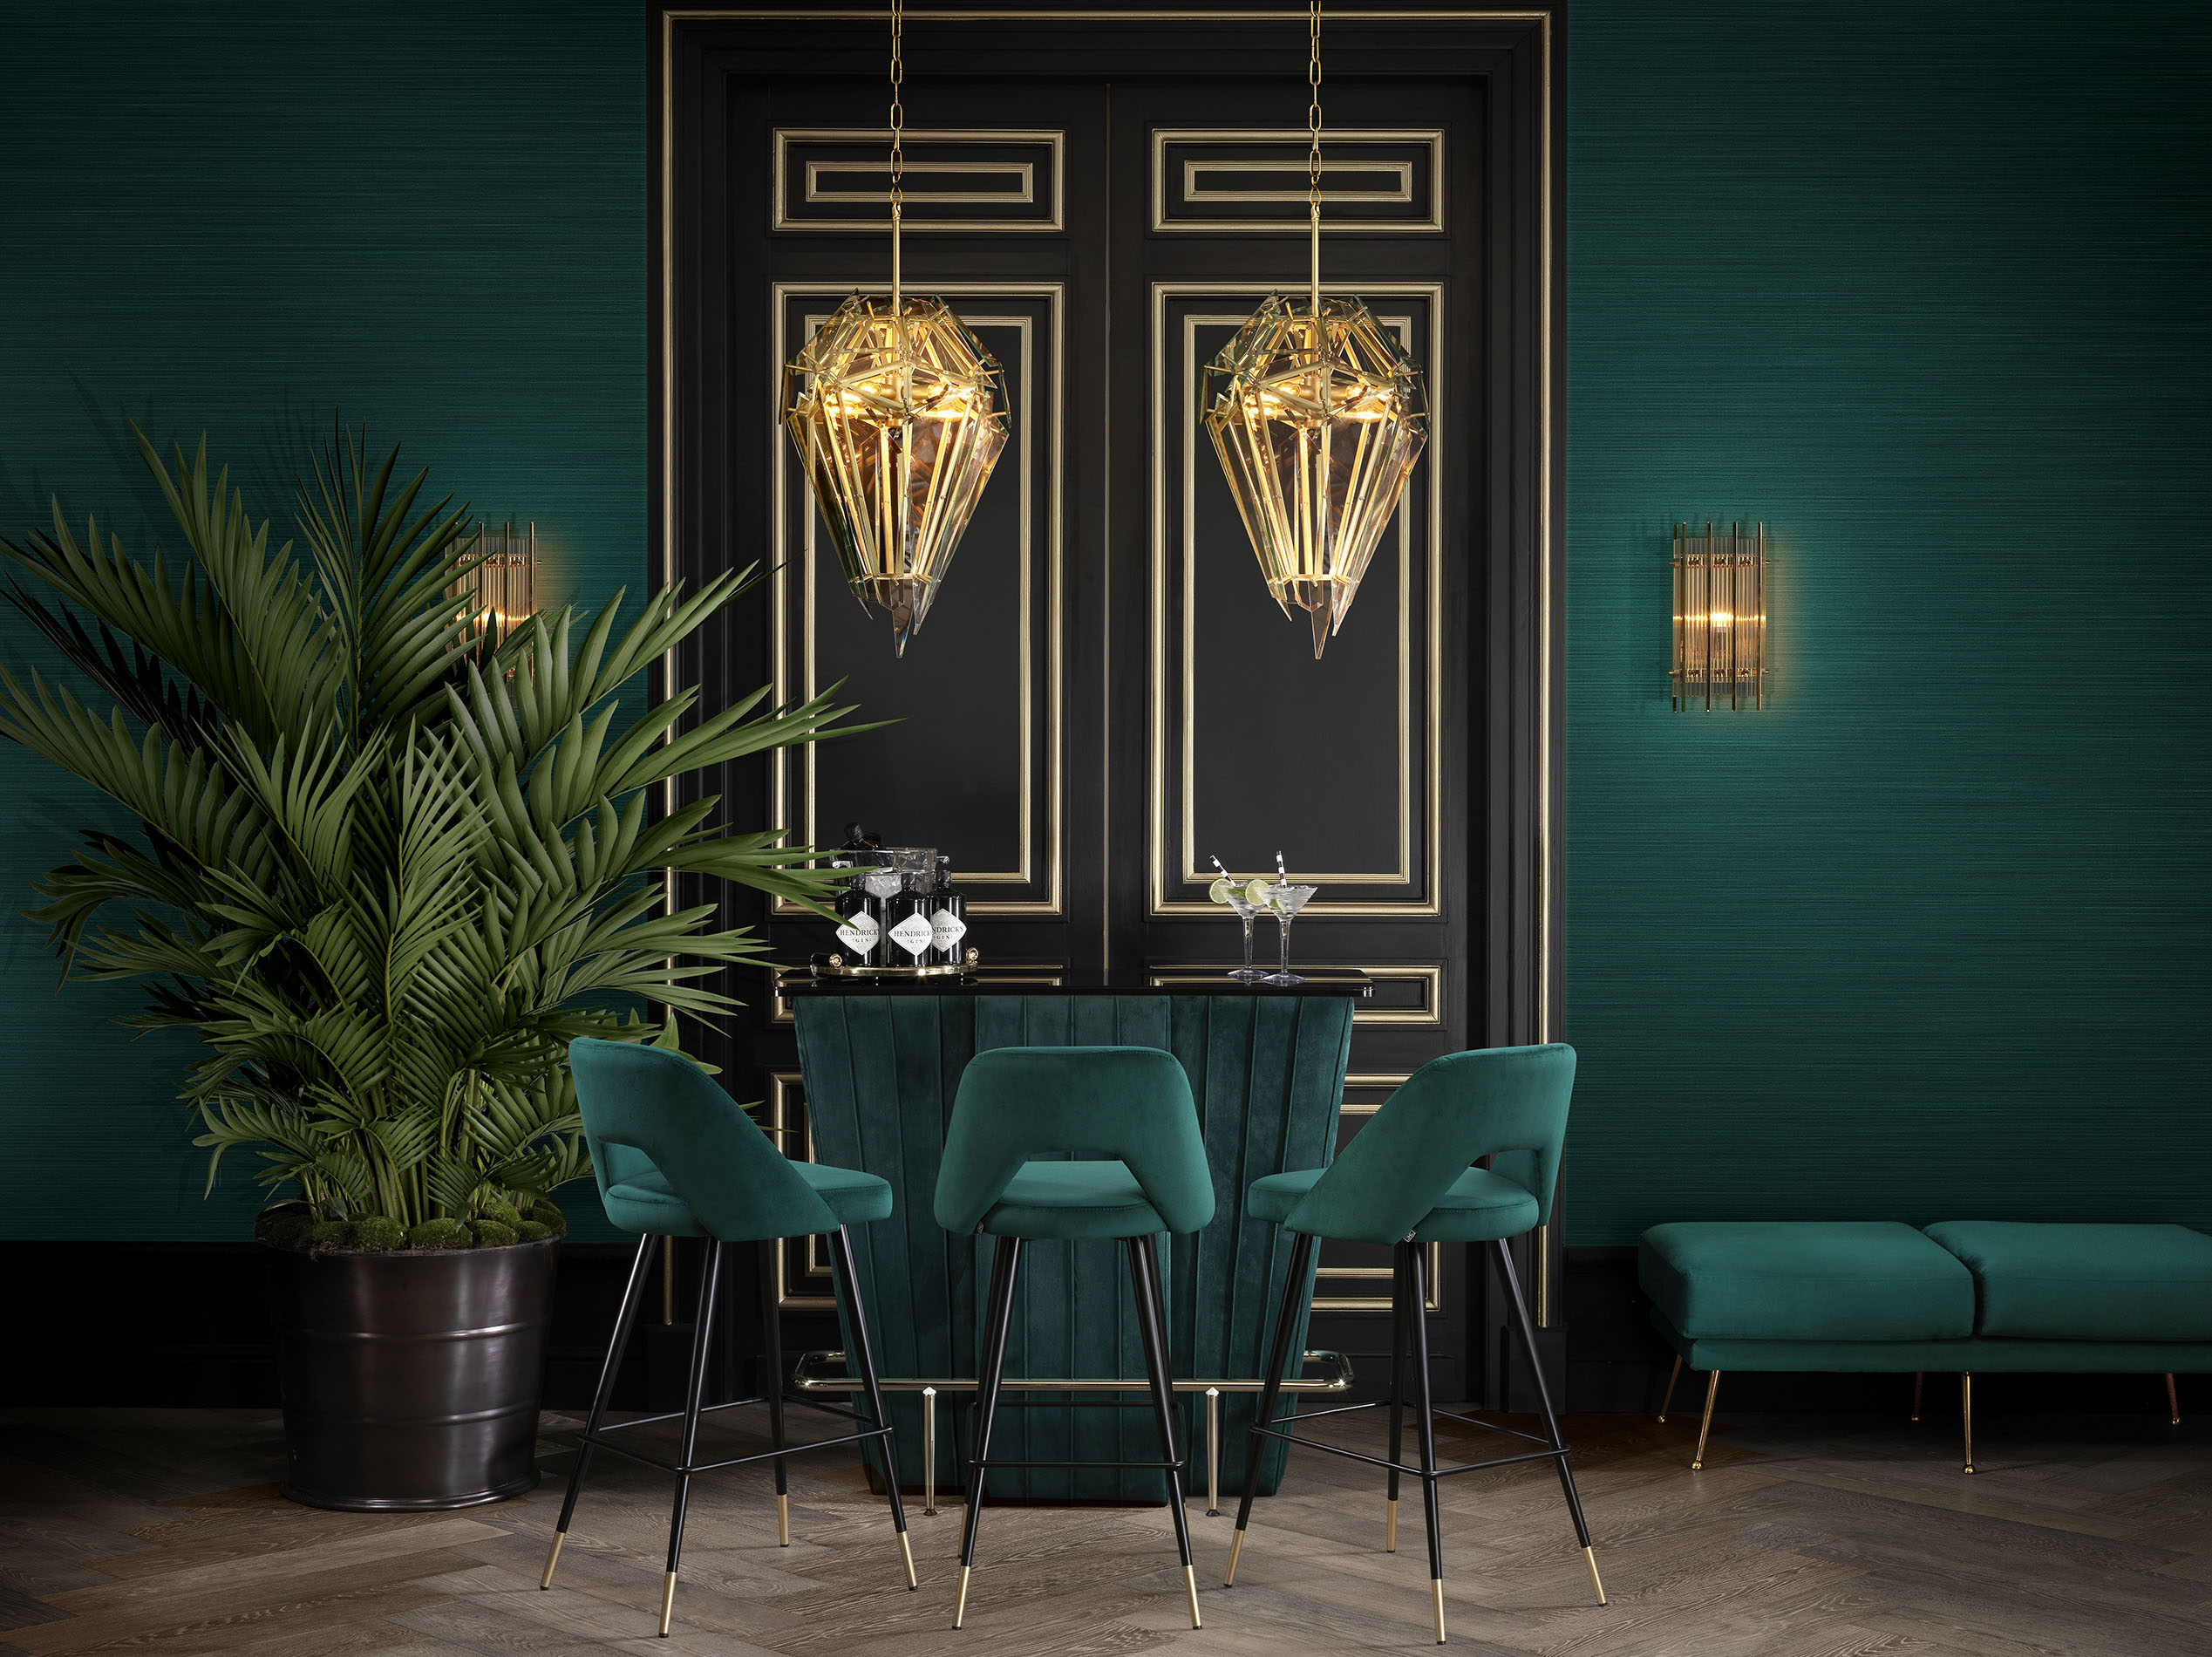 green velvet bar table with matching fabrics barstools with black and gold legs, mpar me idiou ifasmatous stools me mavra kai xrisa podia,